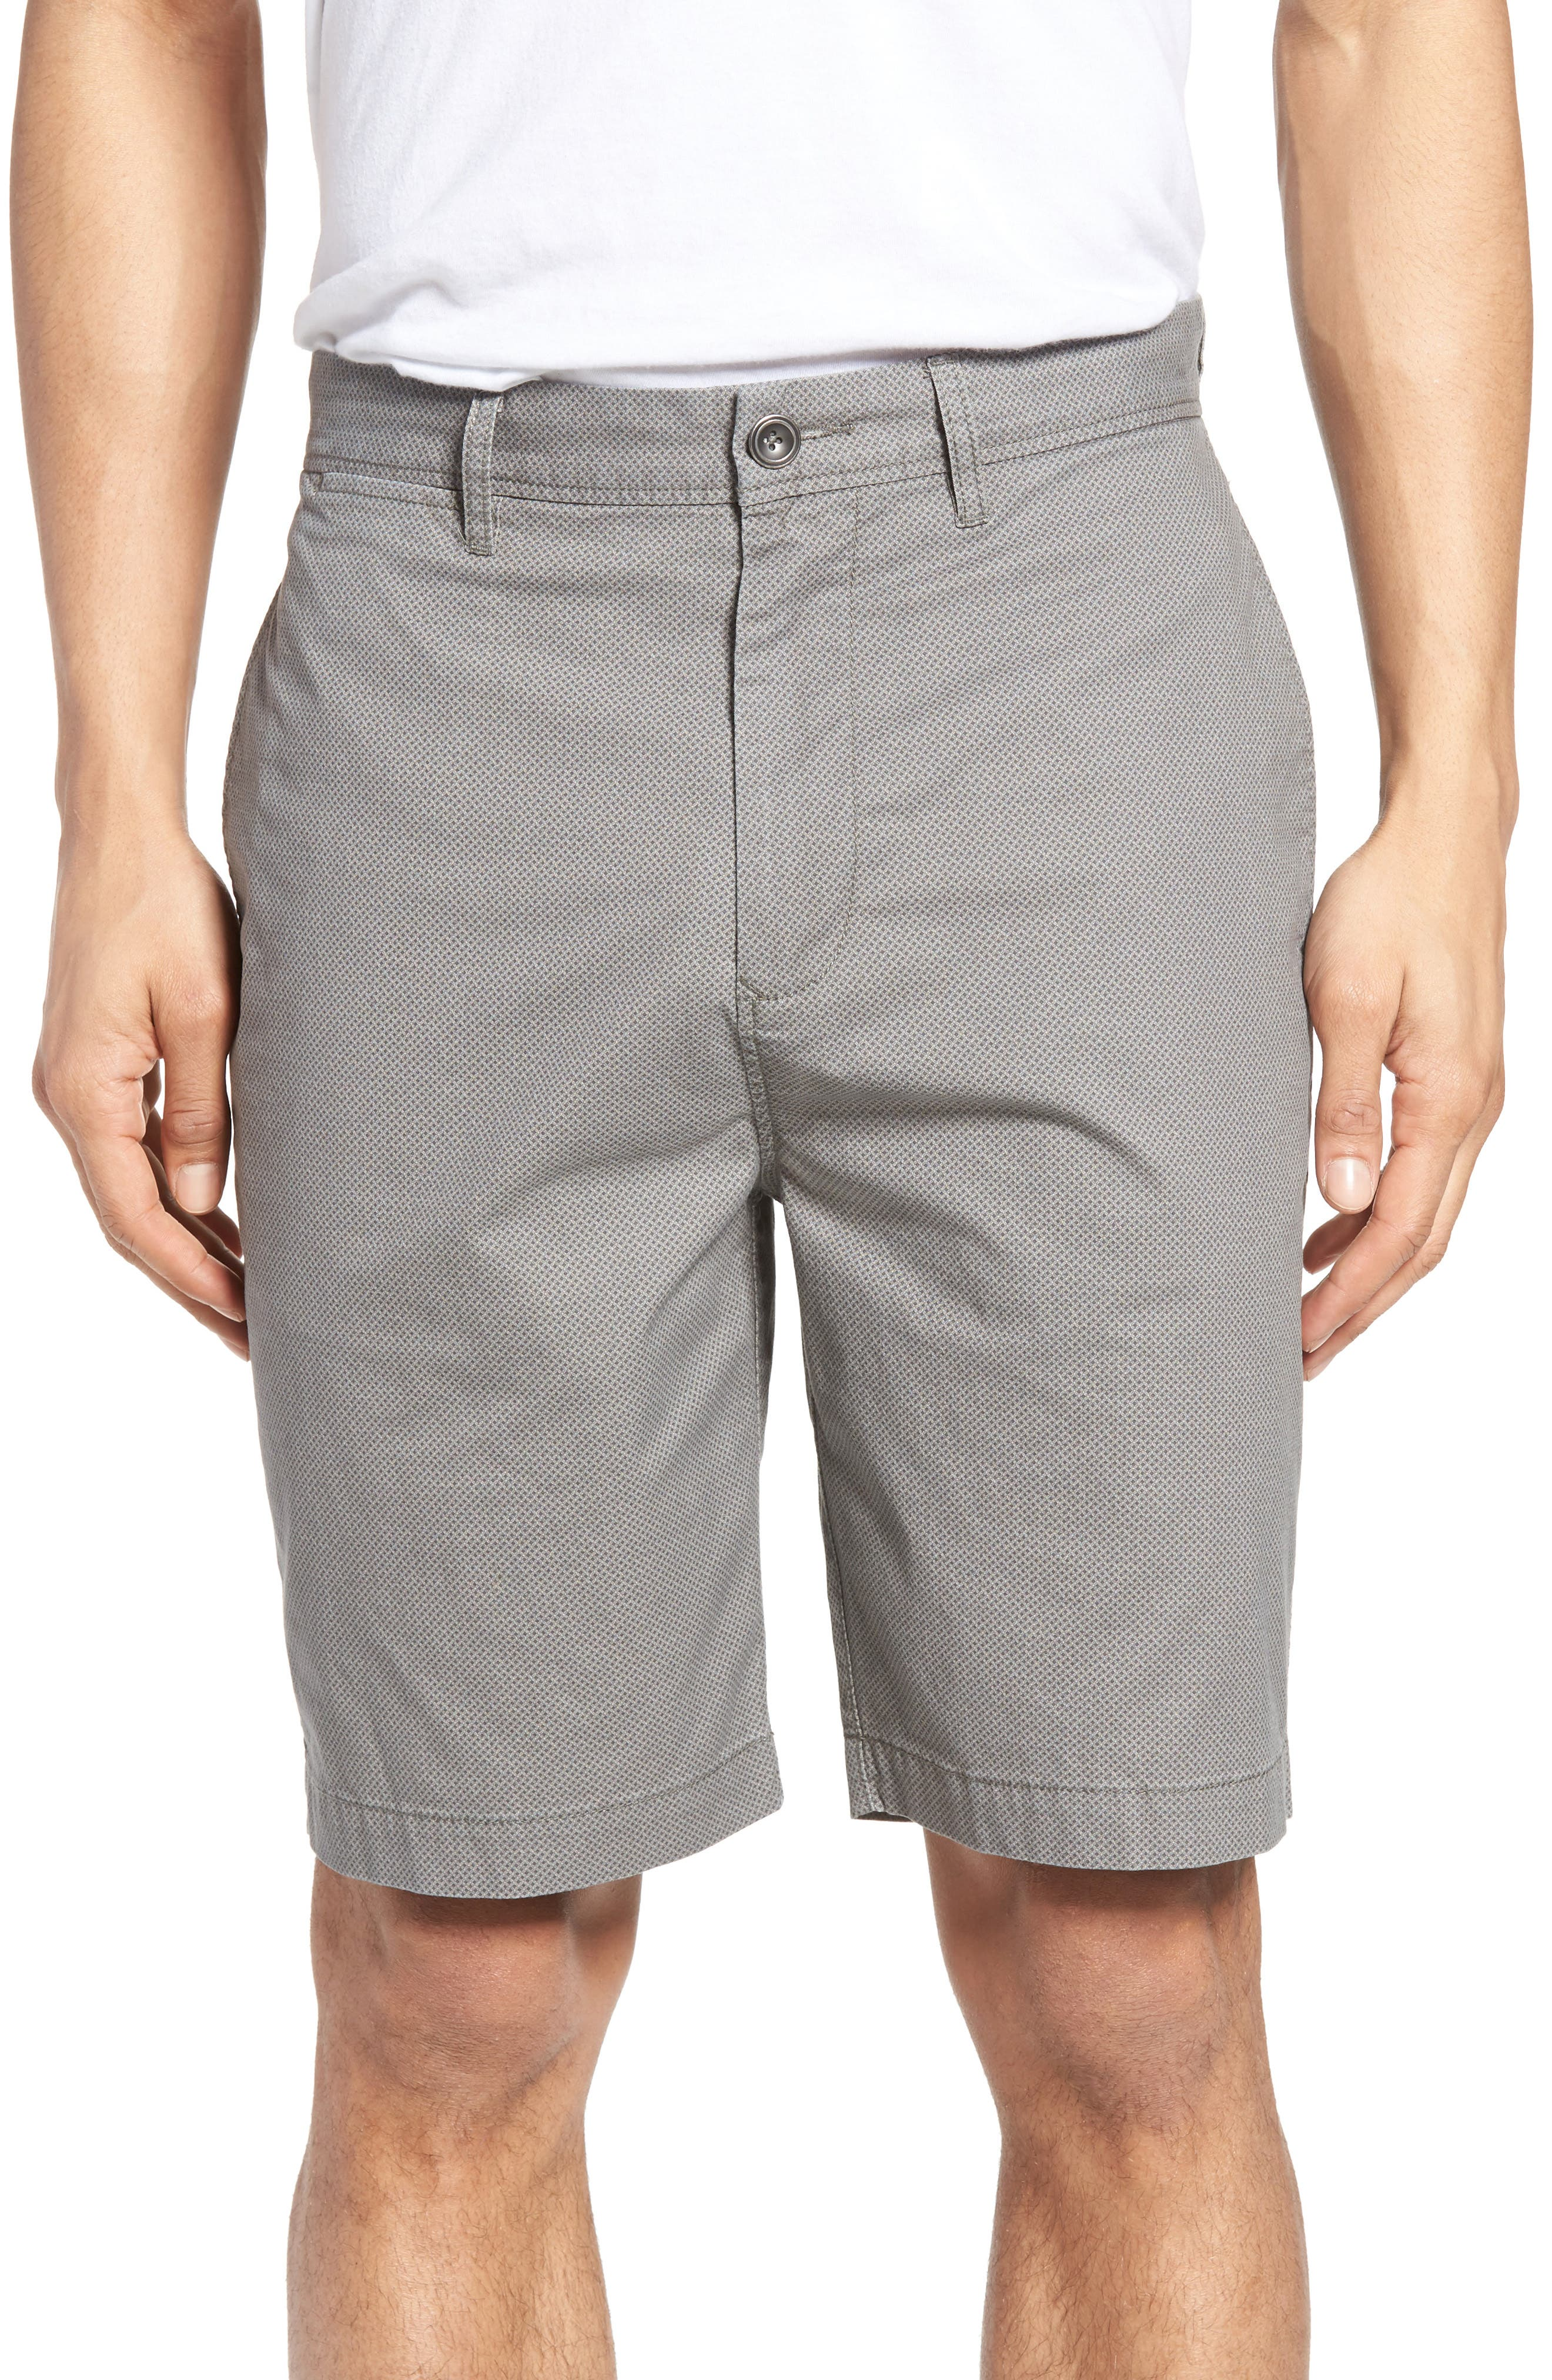 Benneydale Shorts,                             Main thumbnail 1, color,                             039